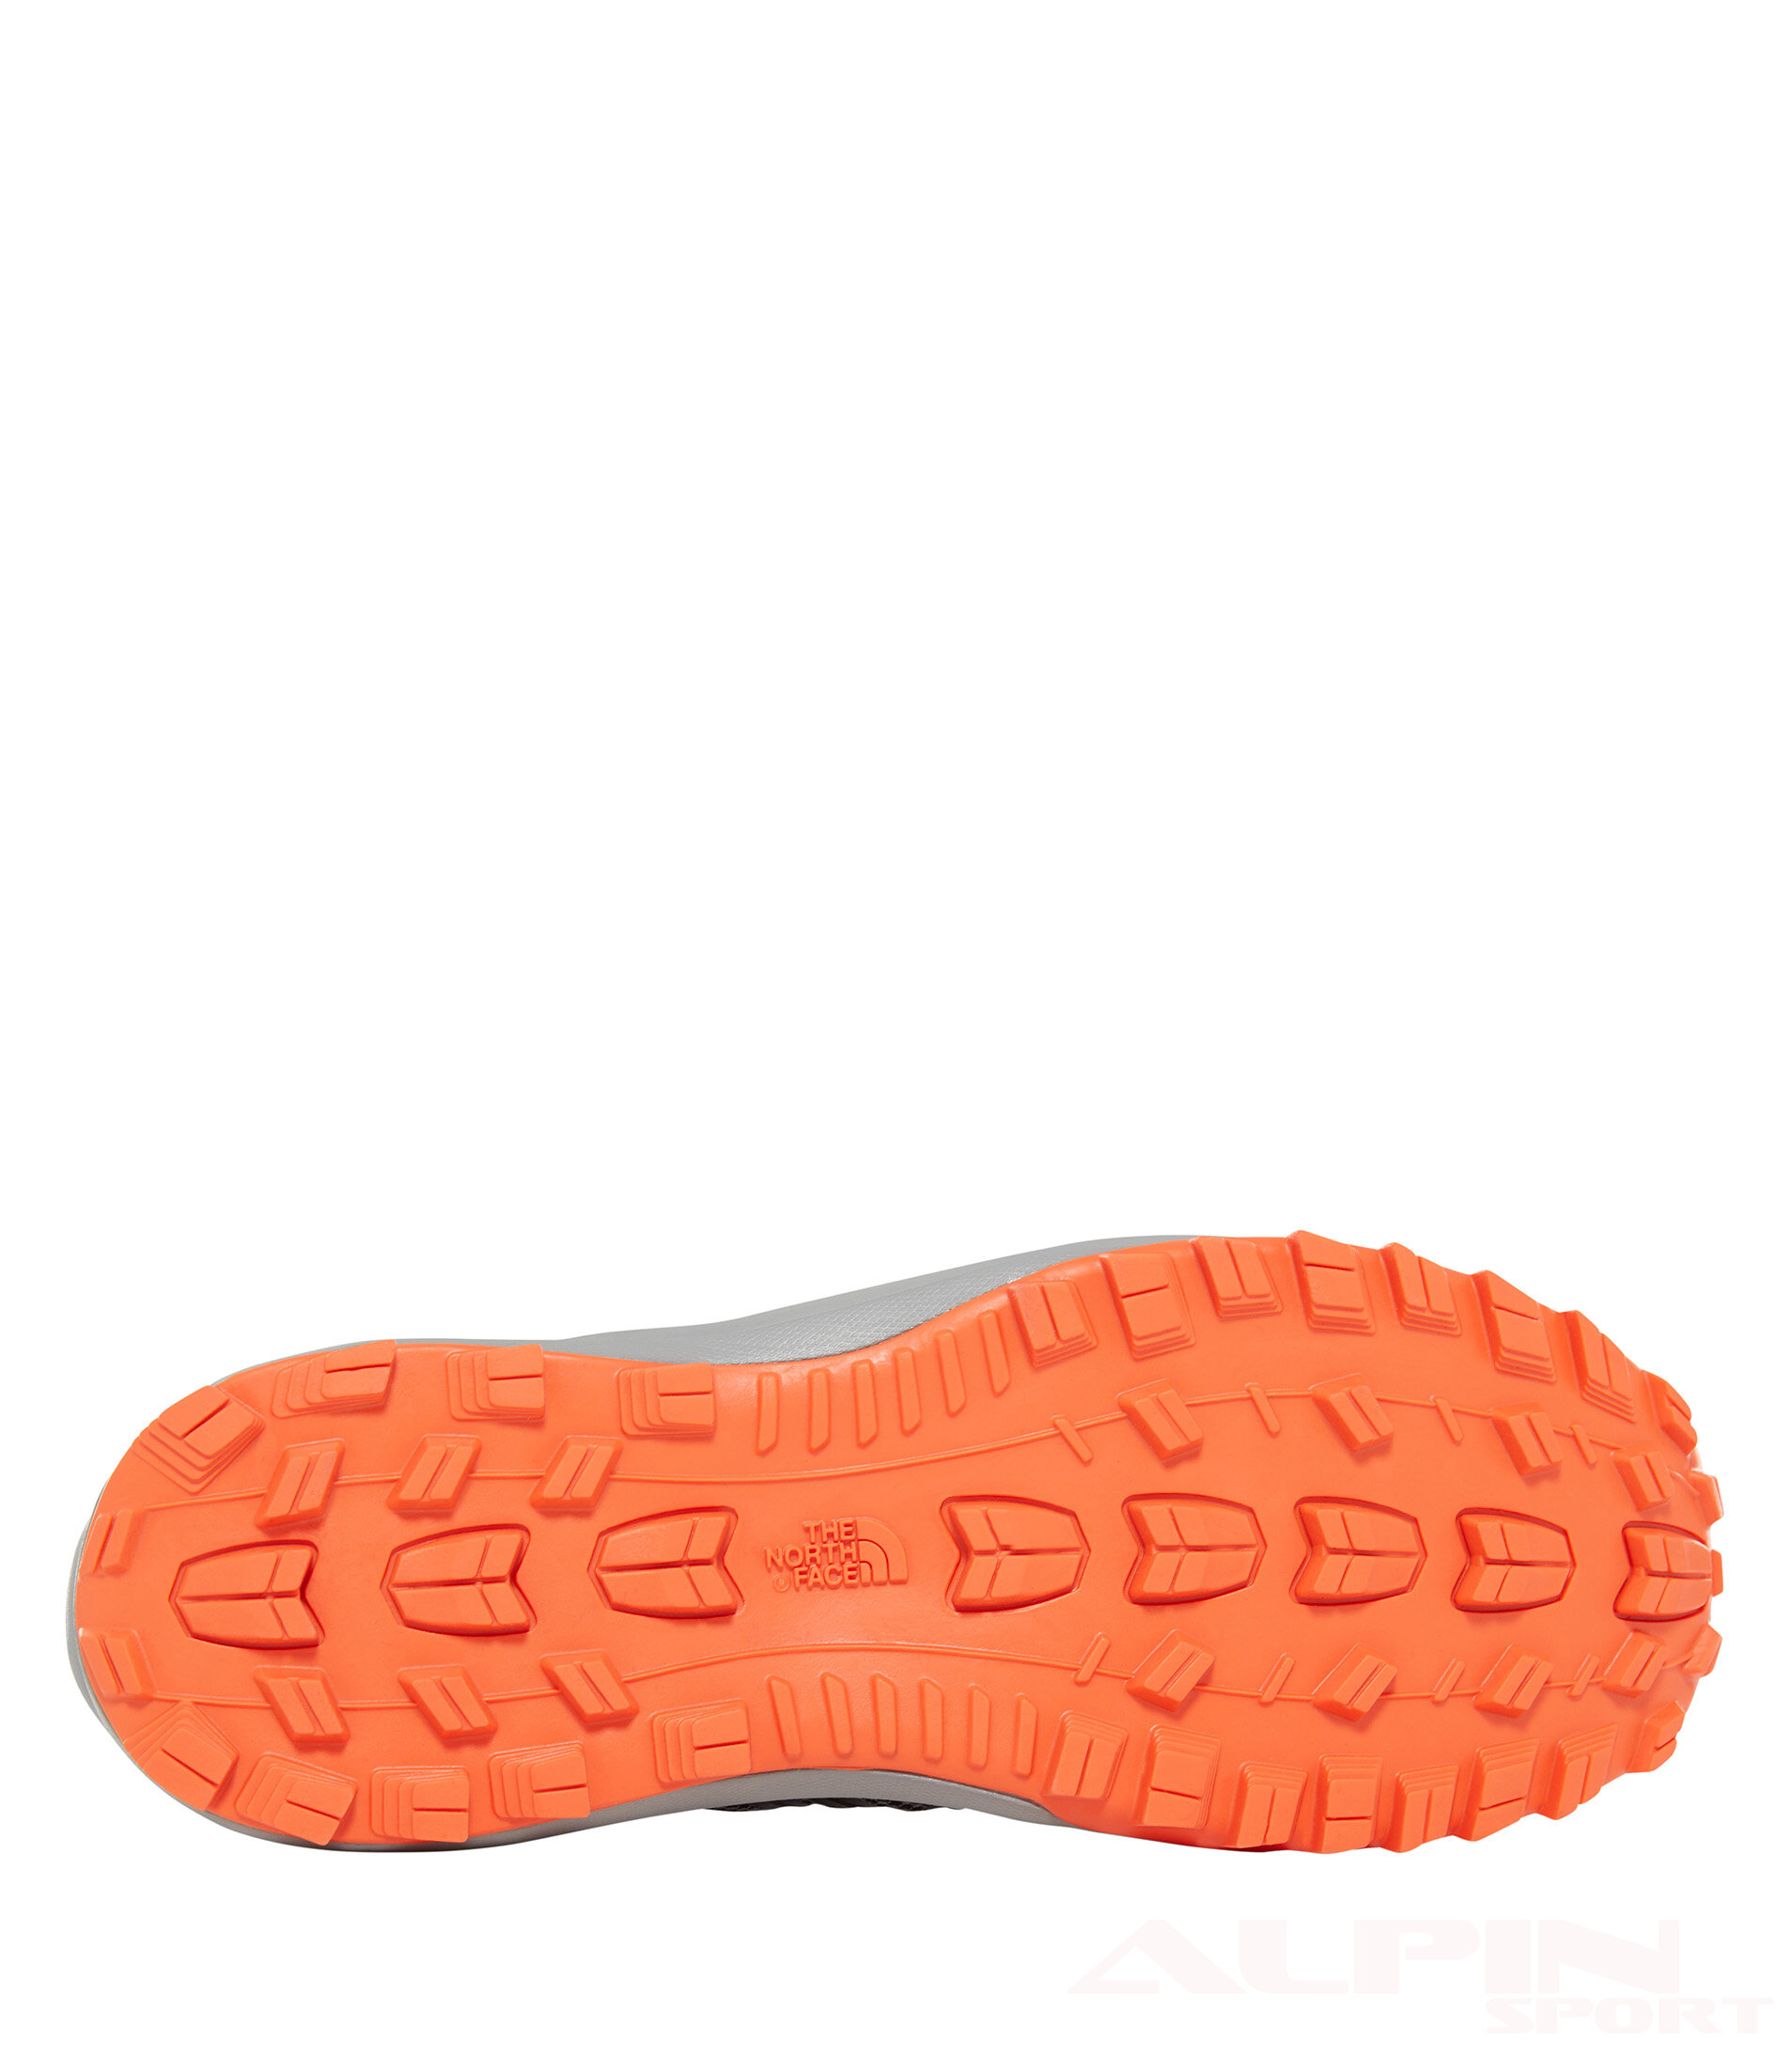 Buty męskie THE NORTH FACE Litewave Fastpack GTX 003_LO_3FX4 5RB 3